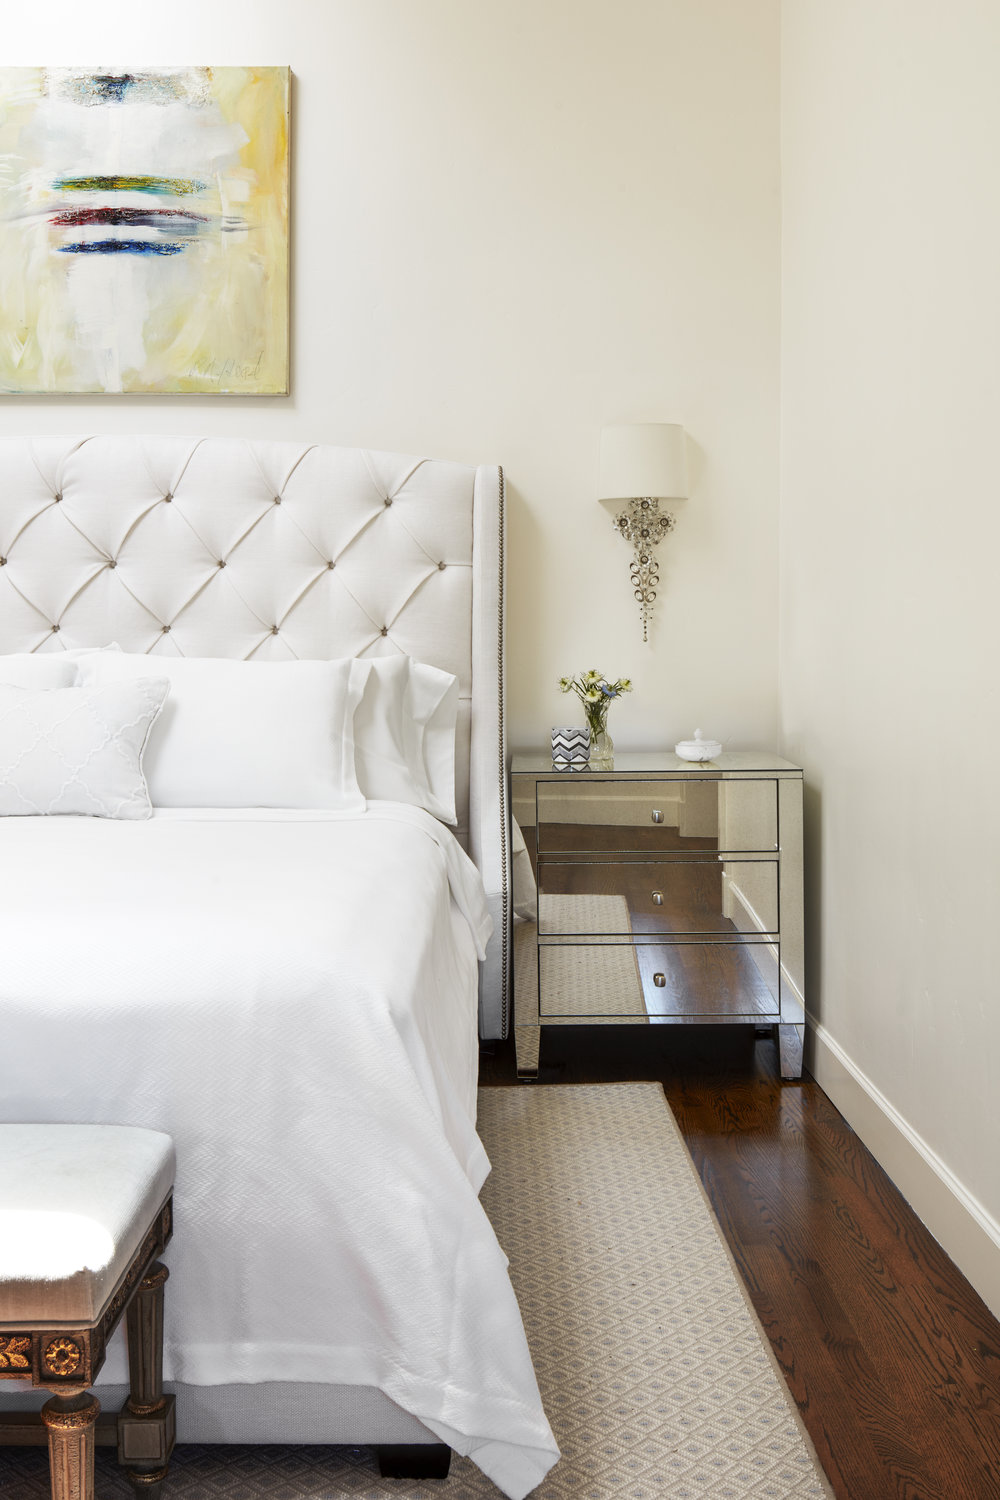 A beloved piece of the client hangs above the headboard in an all white room.